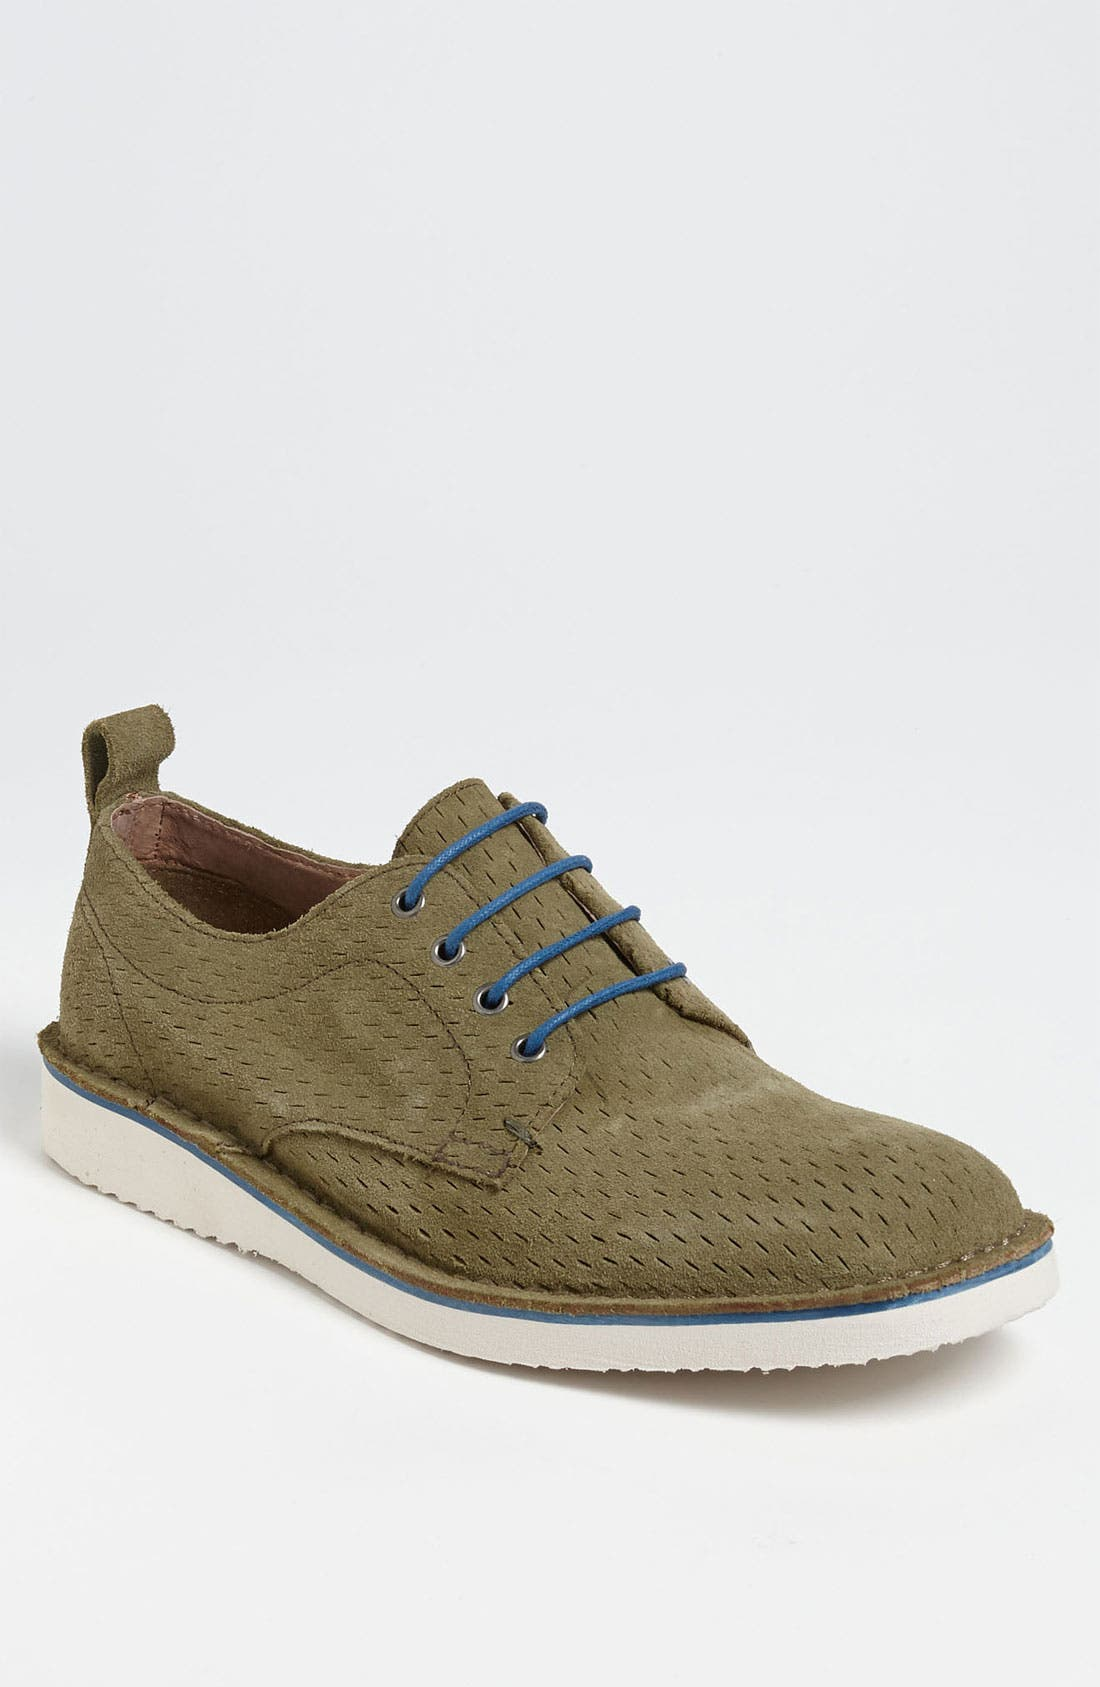 Main Image - Andrew Marc 'Baxter' Perforated Buck Shoe (Men)